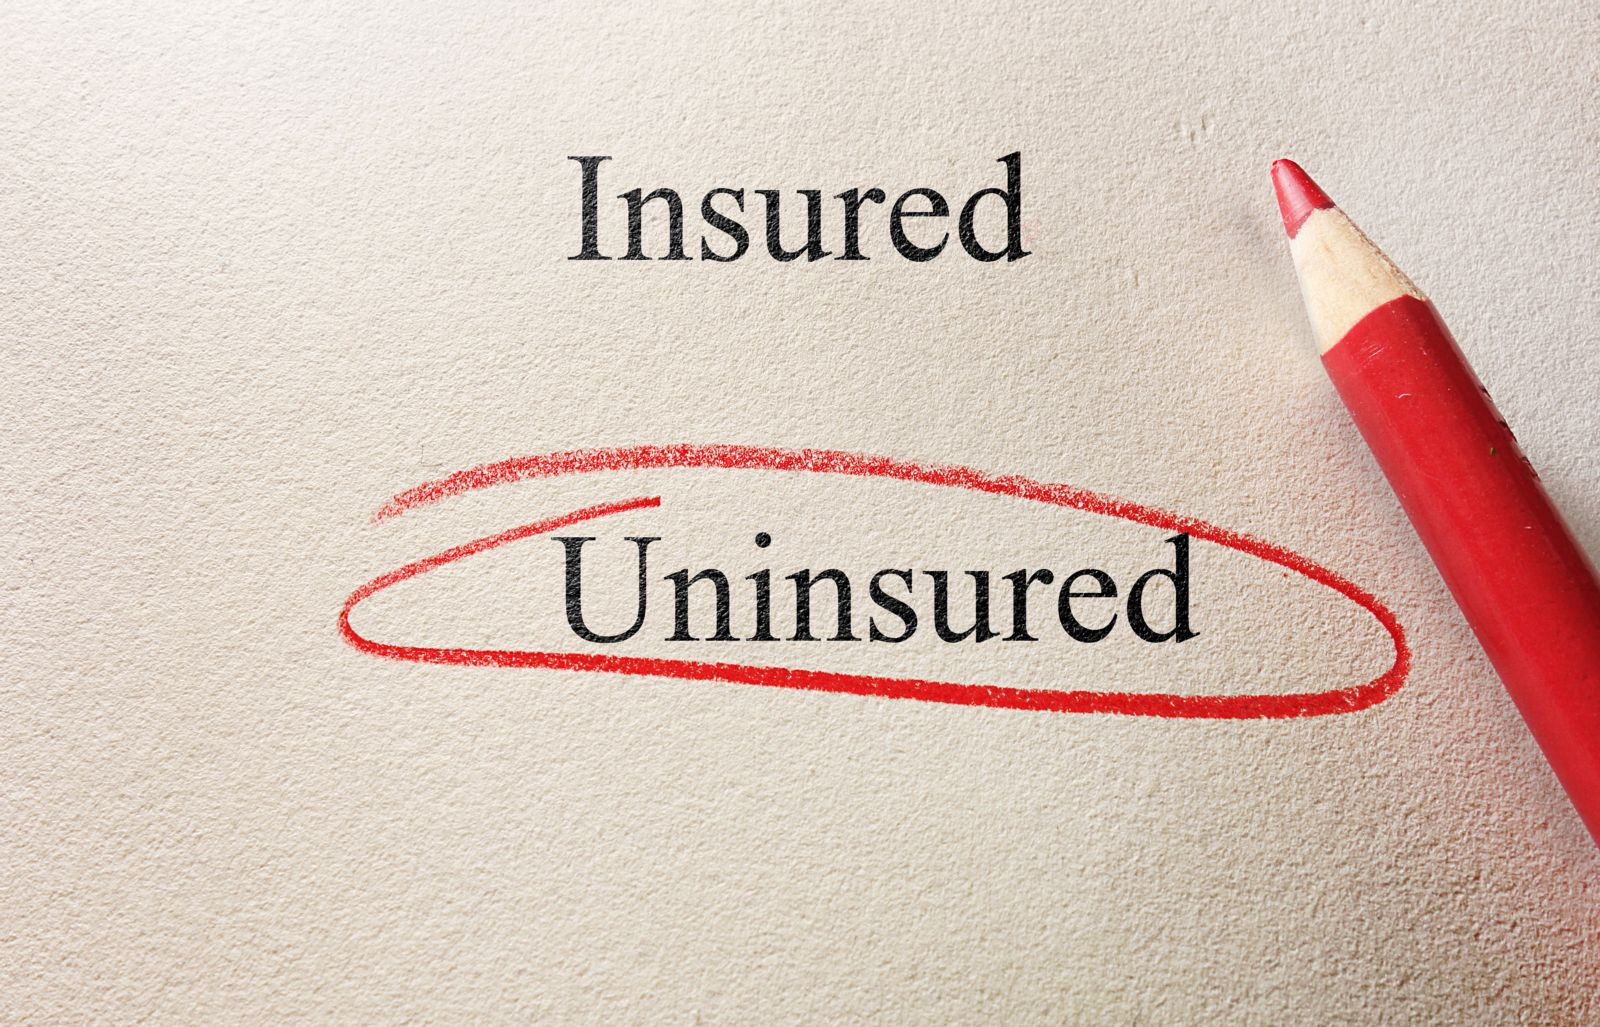 Uninsured Circled on Paper